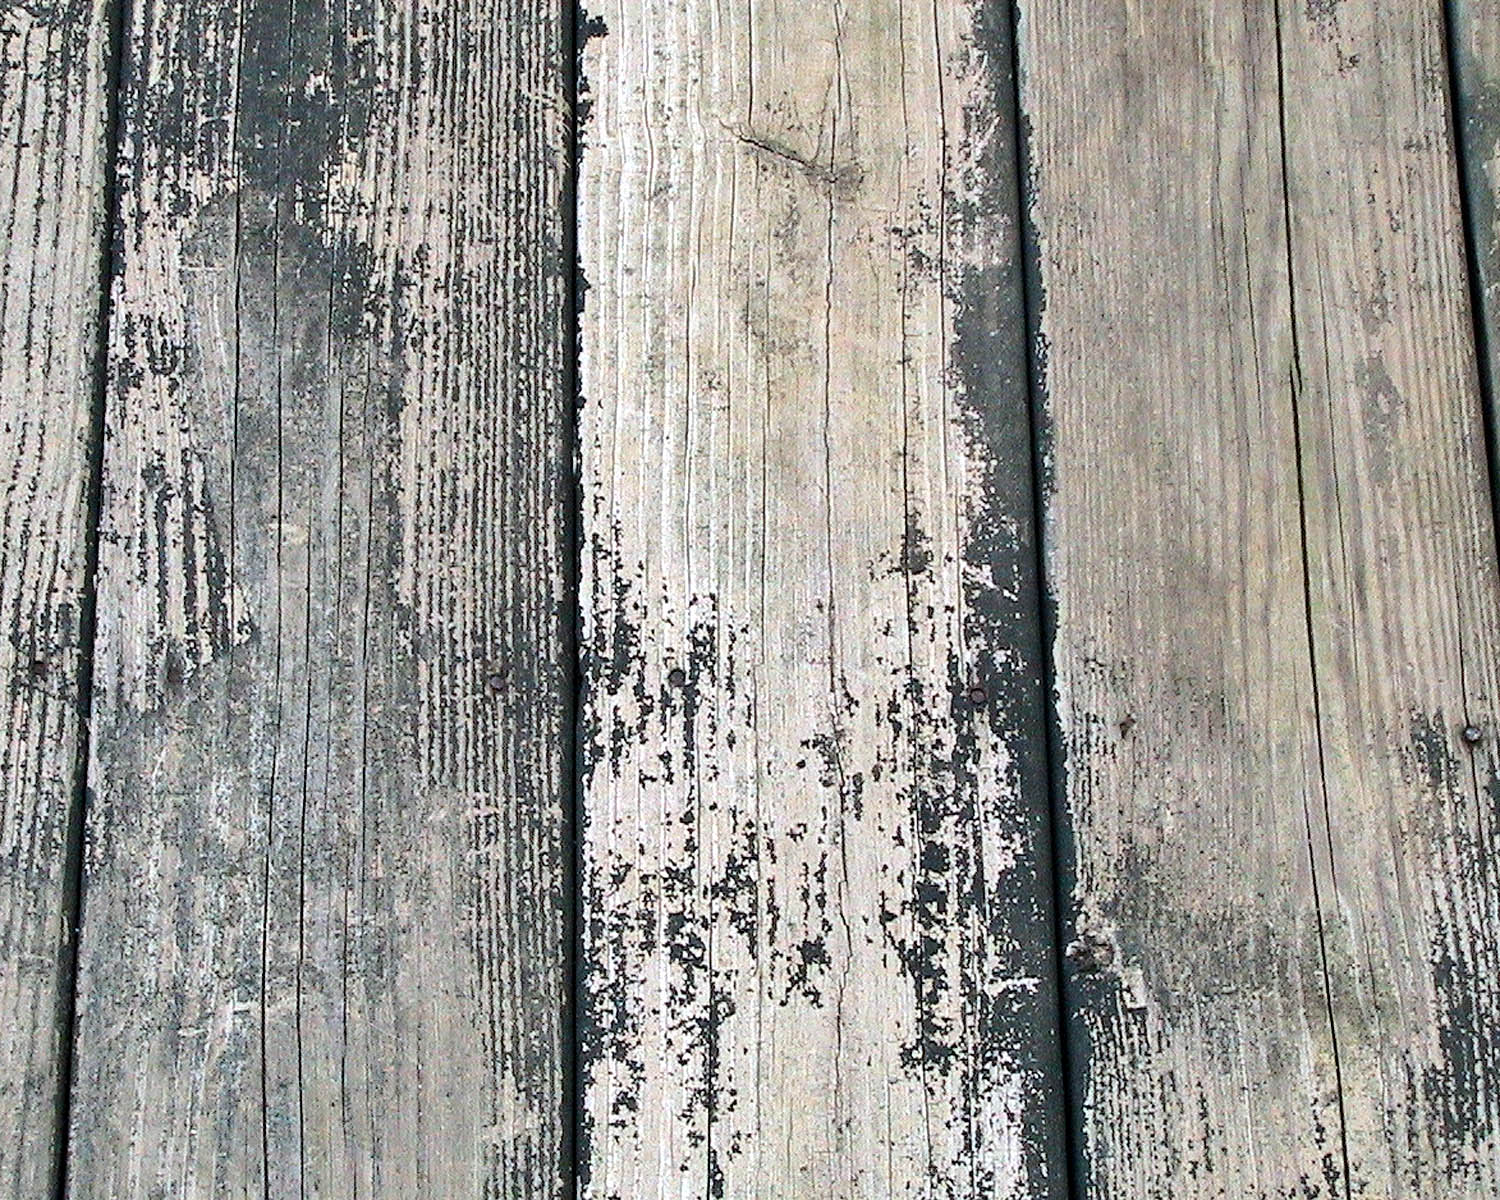 weathered wood   get domain pictures   getdomainvidscom 1500x1200